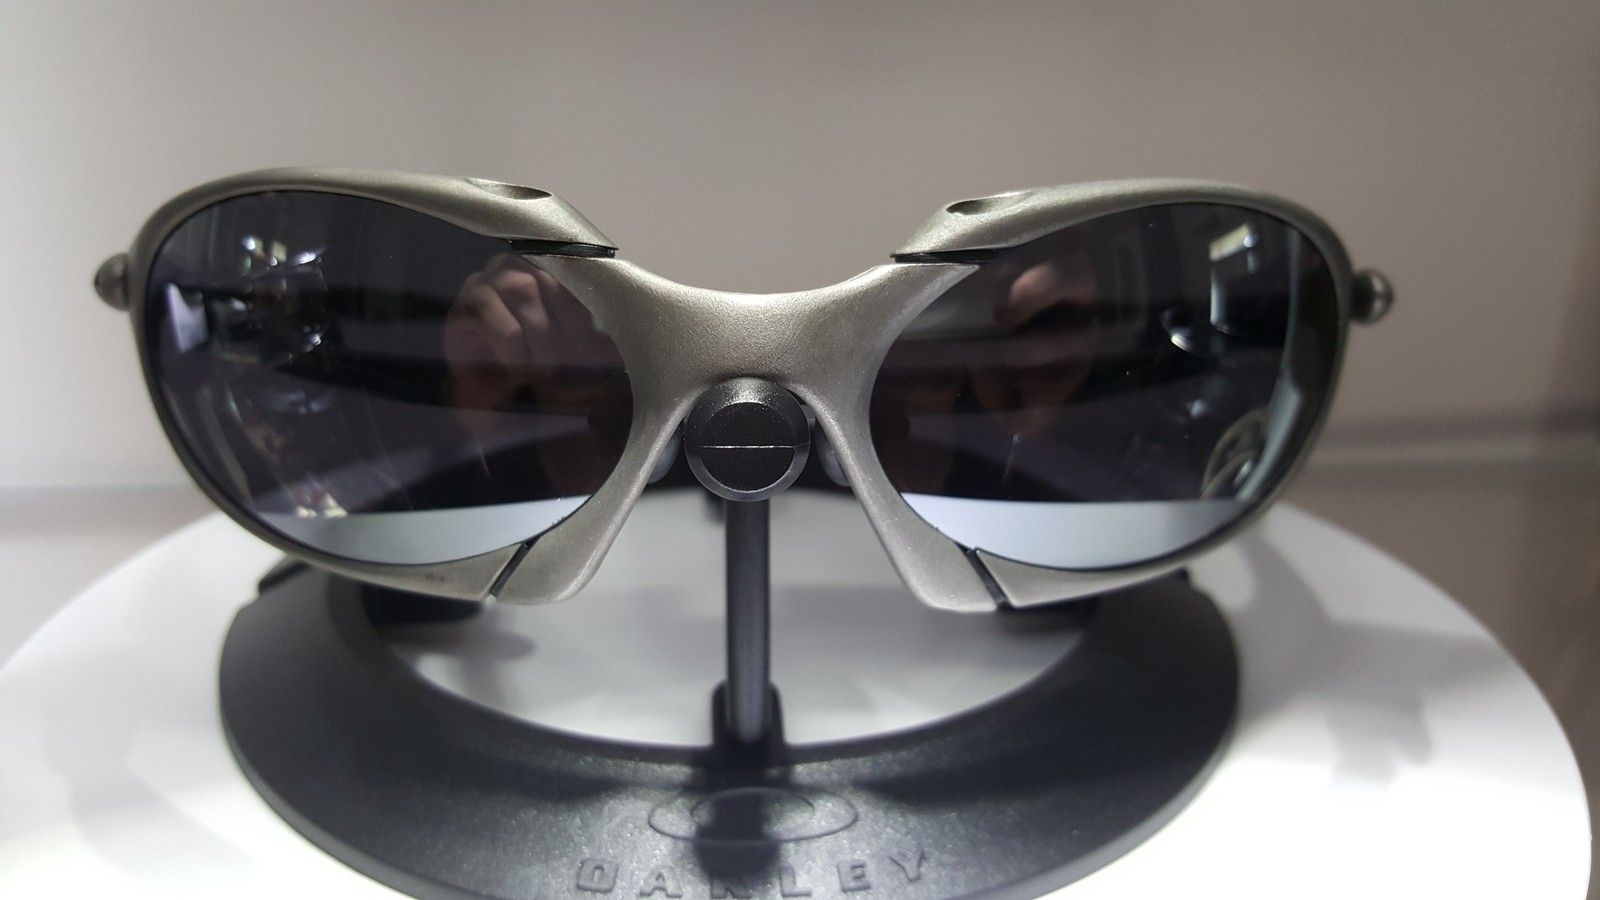 X metal Romeo 1(brand new OEM lenses) - 20151009_075552.jpg